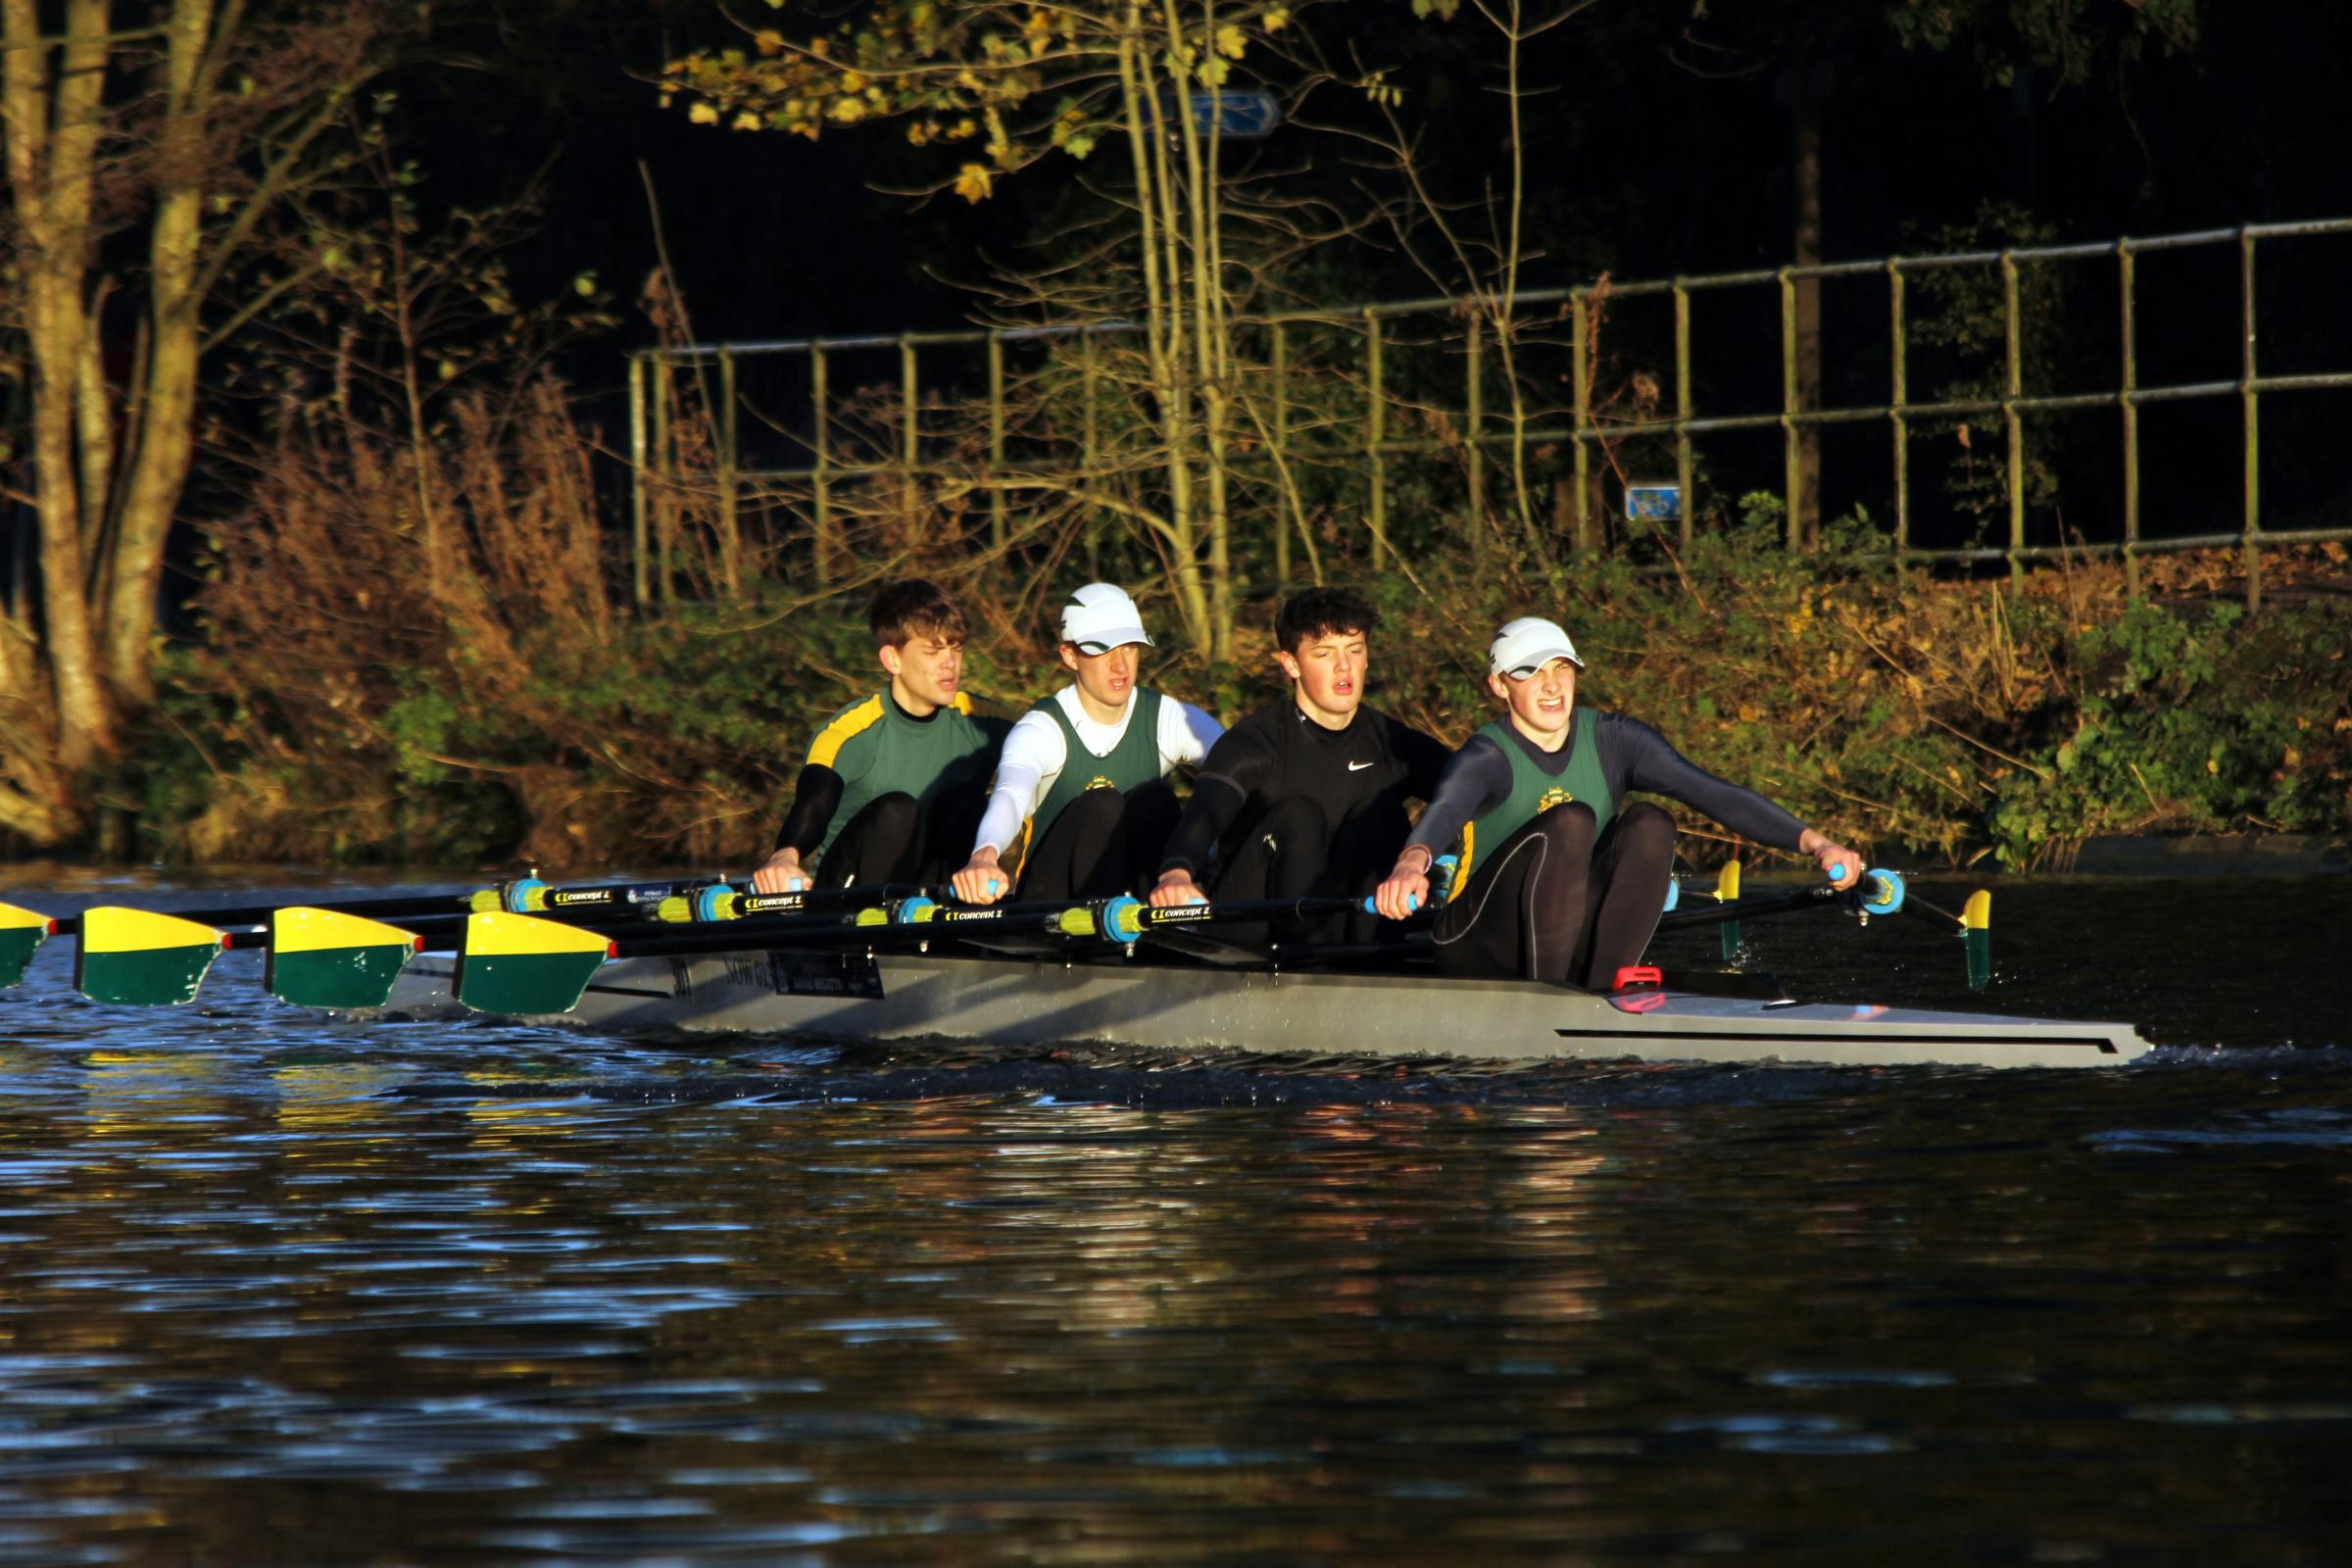 An under 17s boys' quad scull from Northwich Rowing Club was the fastest on the River Weaver at last weekend's Autumn Head. Picture: Rachel Hooper